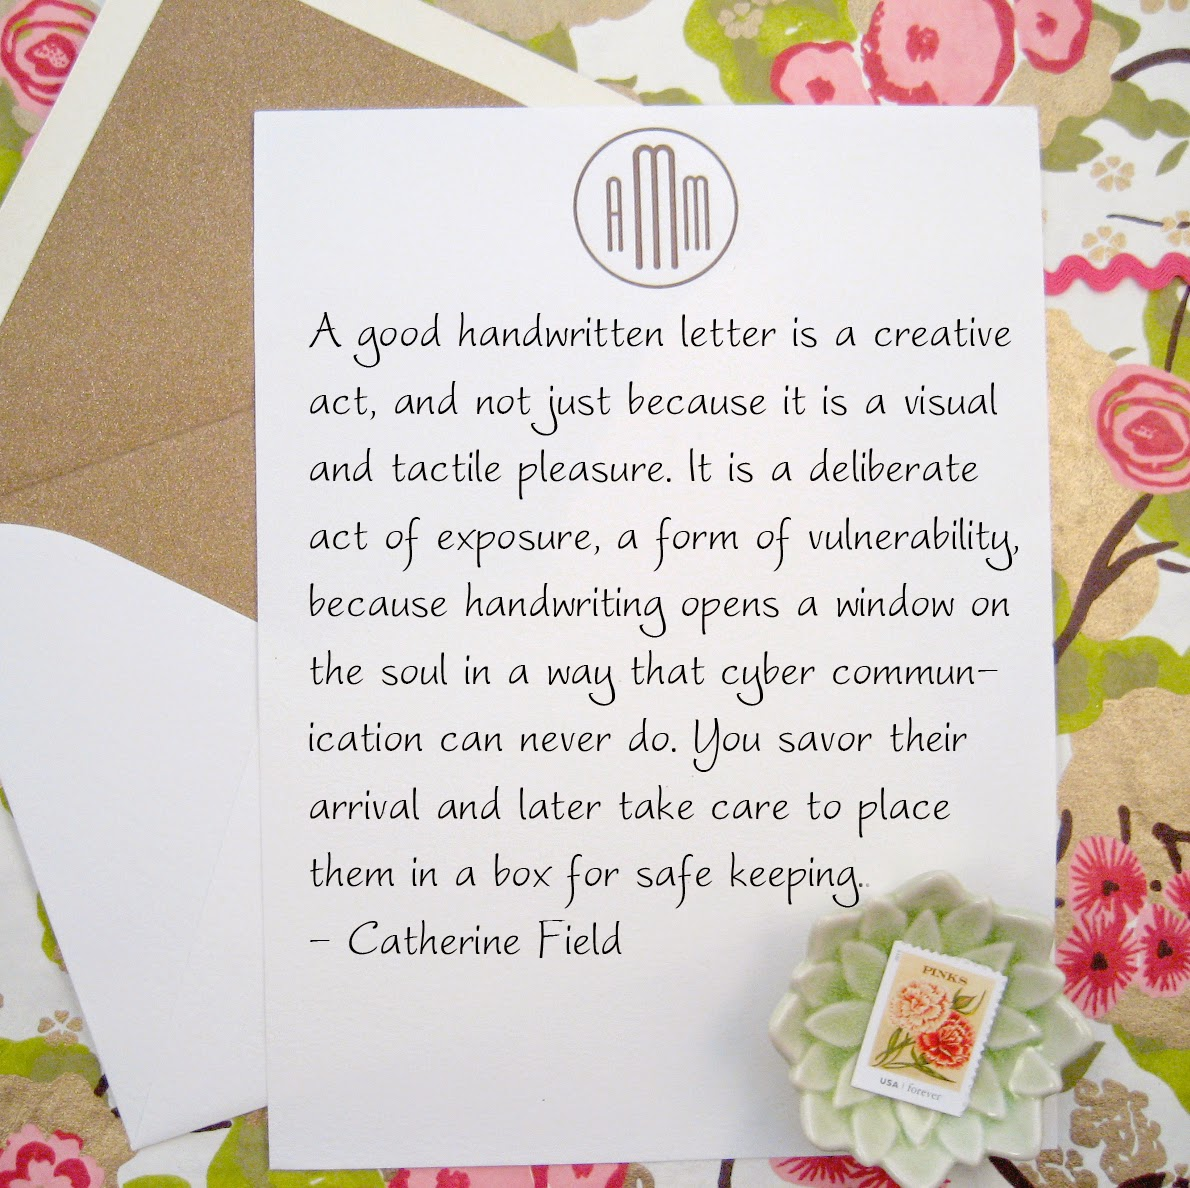 A good handwritten letter is a creative act, and not just because it is a visual and tactile pleasure. It is a deliberate act of exposure, a form of vulnerability, because handwriting opens a window on the soul in a way that cyber communication can never do. You savor their arrival and later take care to place them in a box for safe keeping. - Catherine Field